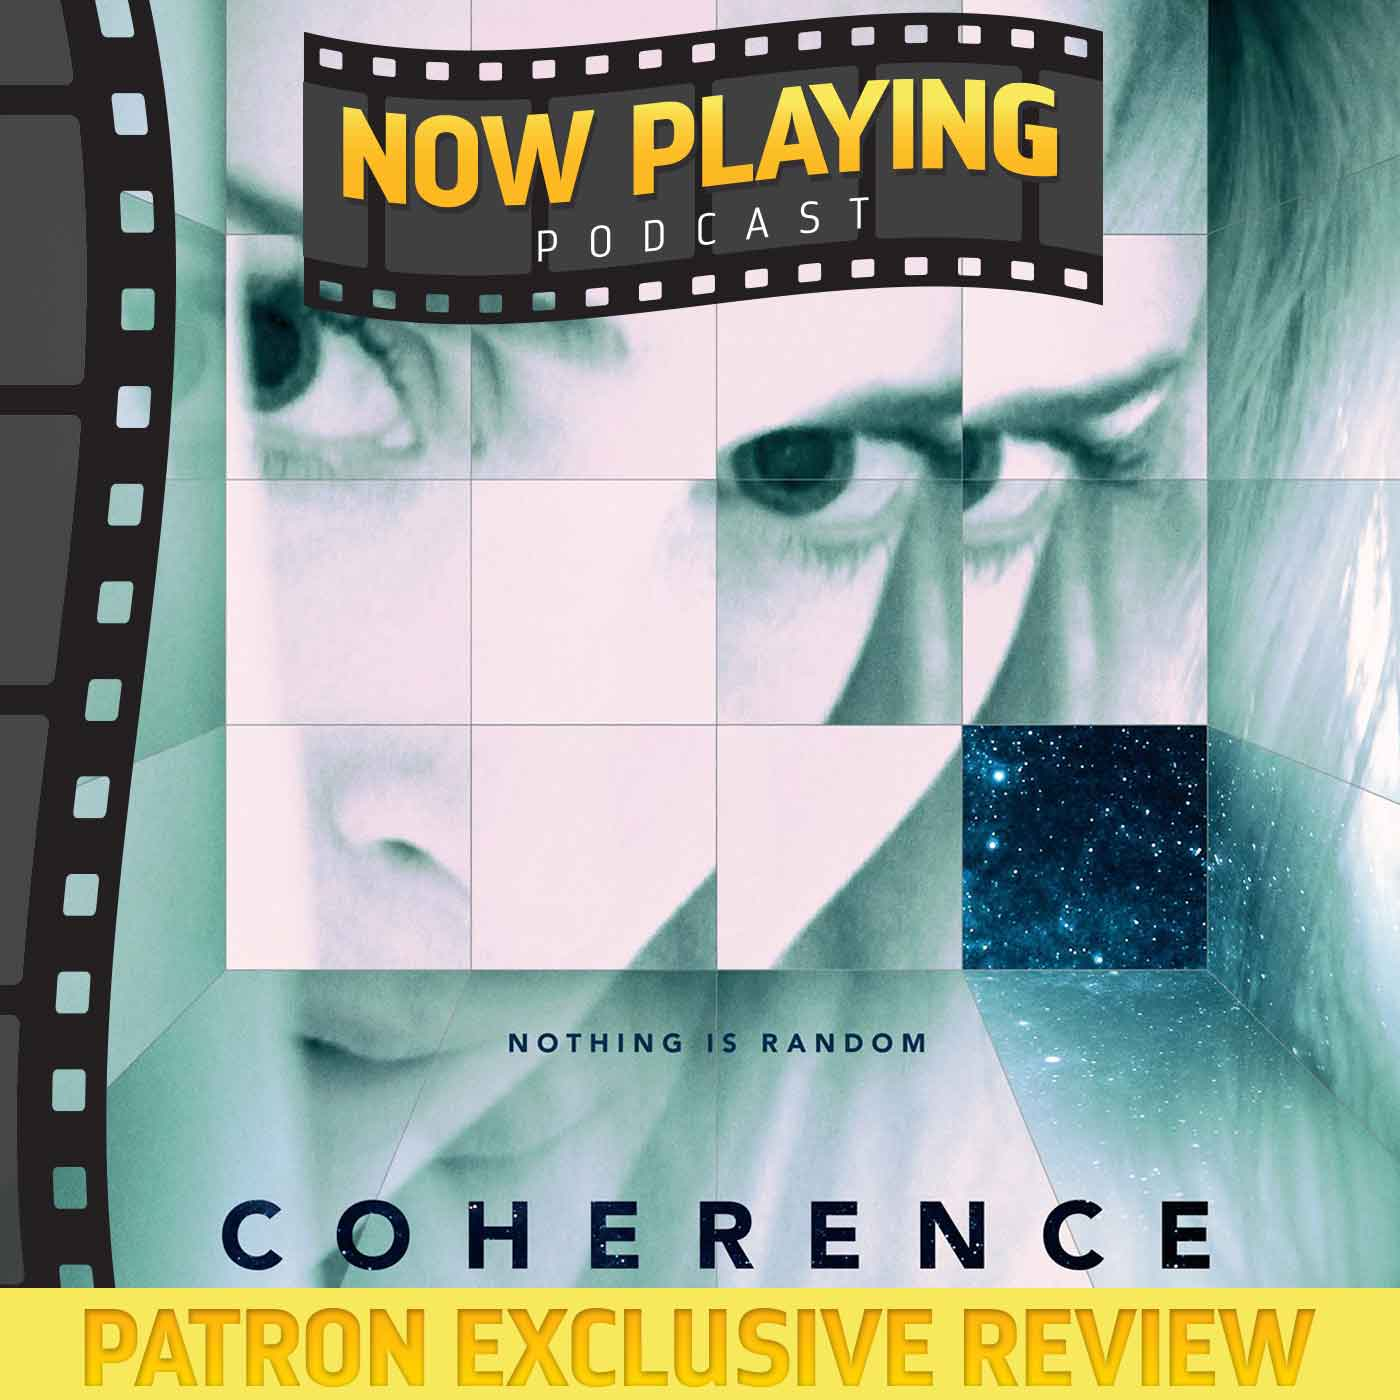 Coherence - Patron Exclusive Review